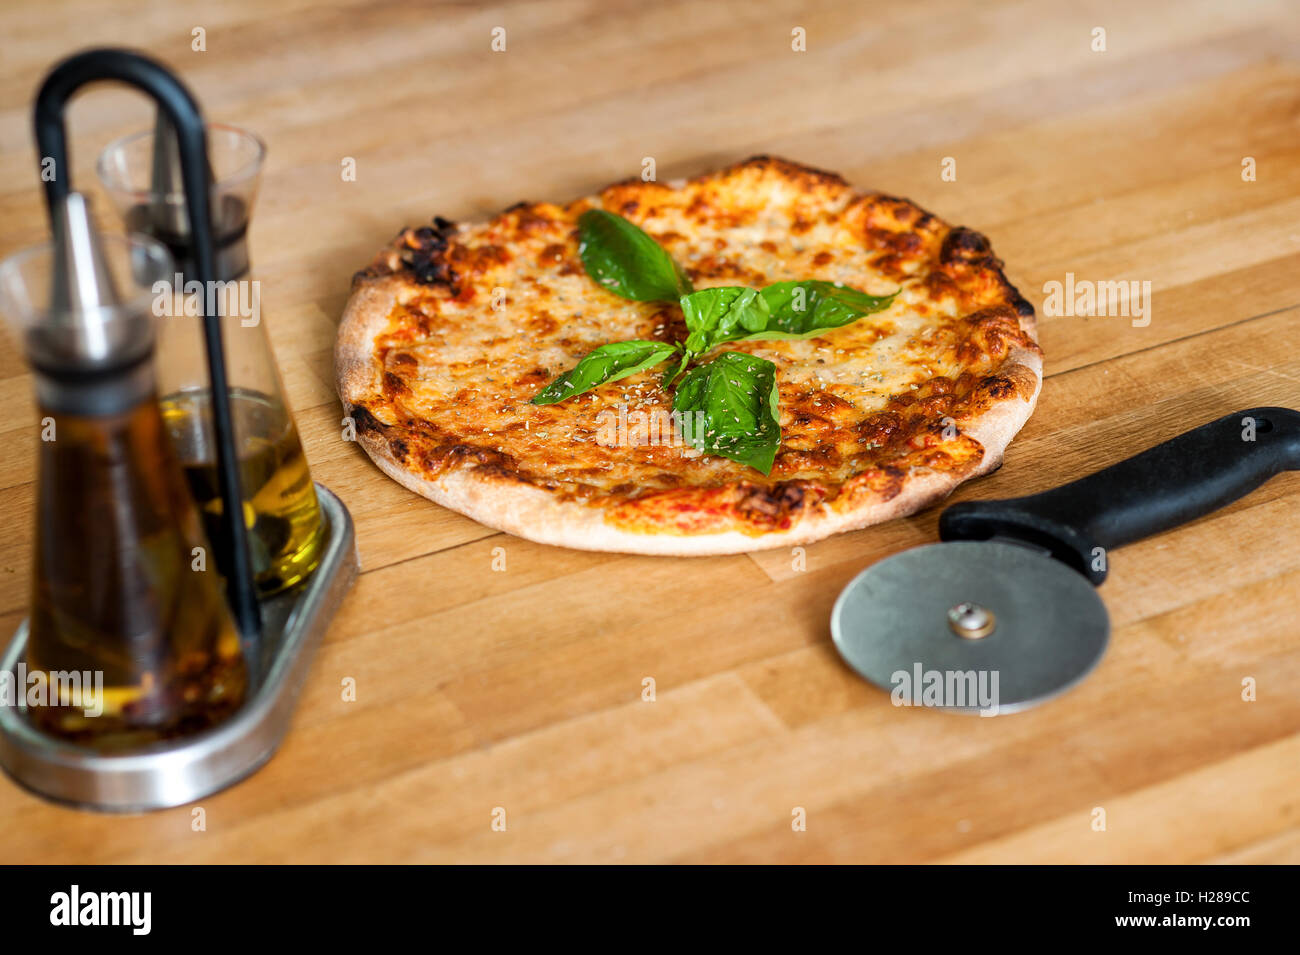 Pizza is ready, please help yourself - Stock Image